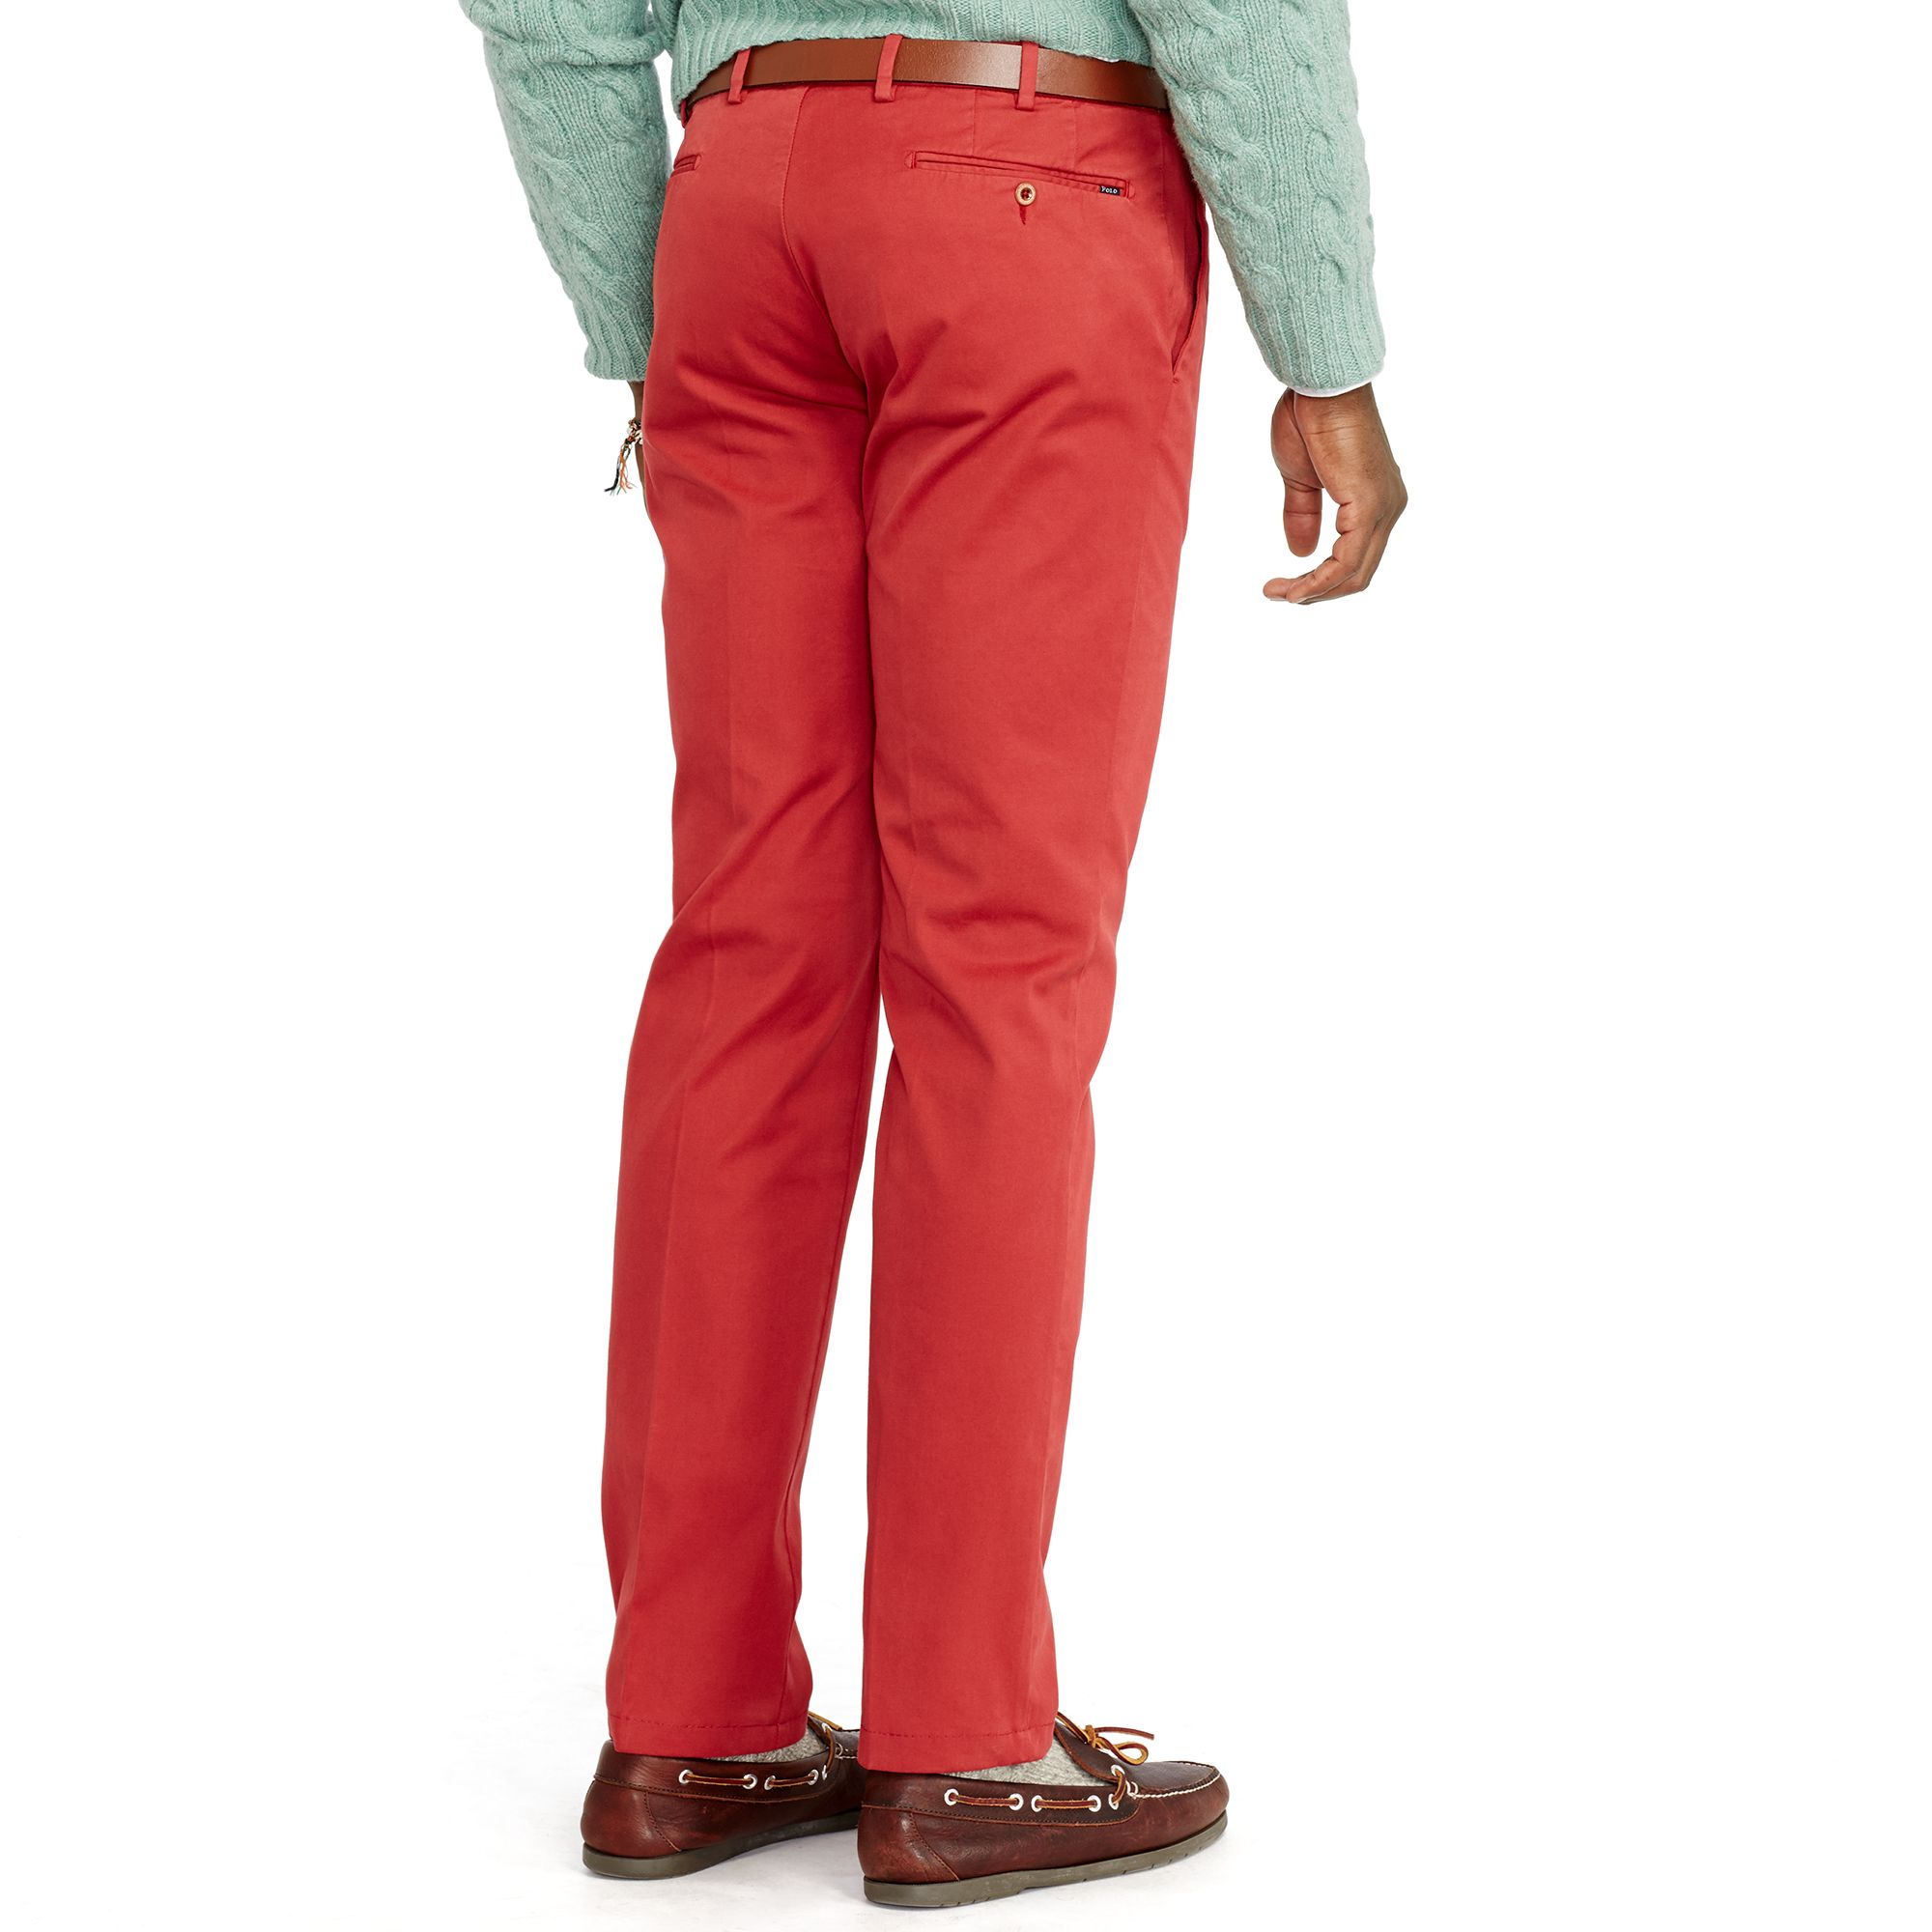 Lauren Men In Red Polo Chino Ralph Stretch Slim Fit Lyst For zwSS5x1Yq